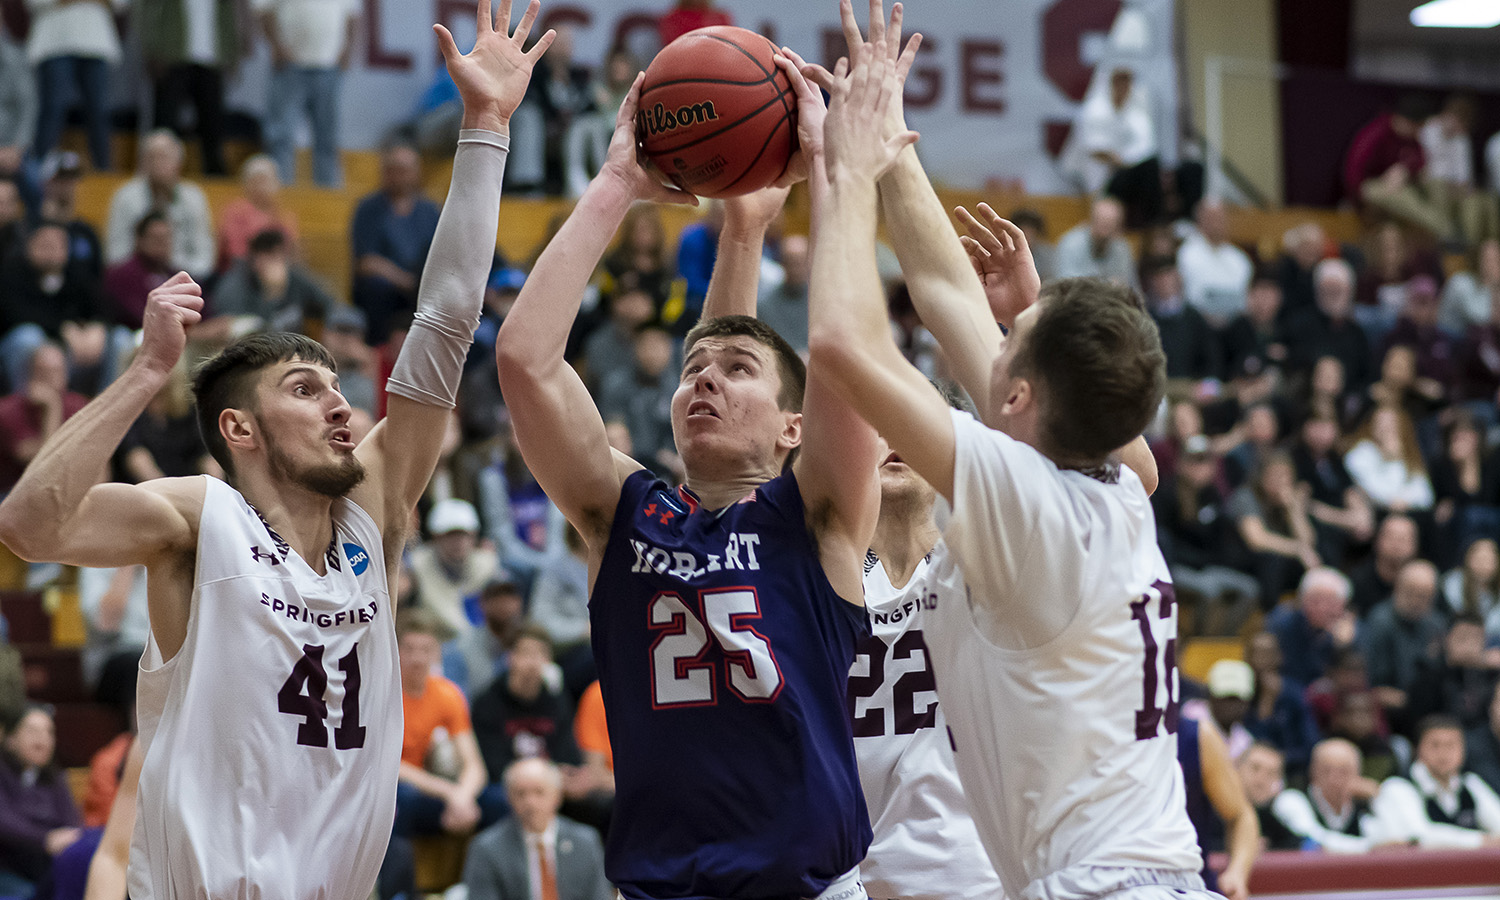 Jackson Meshanic '22 gets a shot off against three defenders. More than 1,500 Springfield College fans ringed the court during an intense second round of the NCAA tournament.